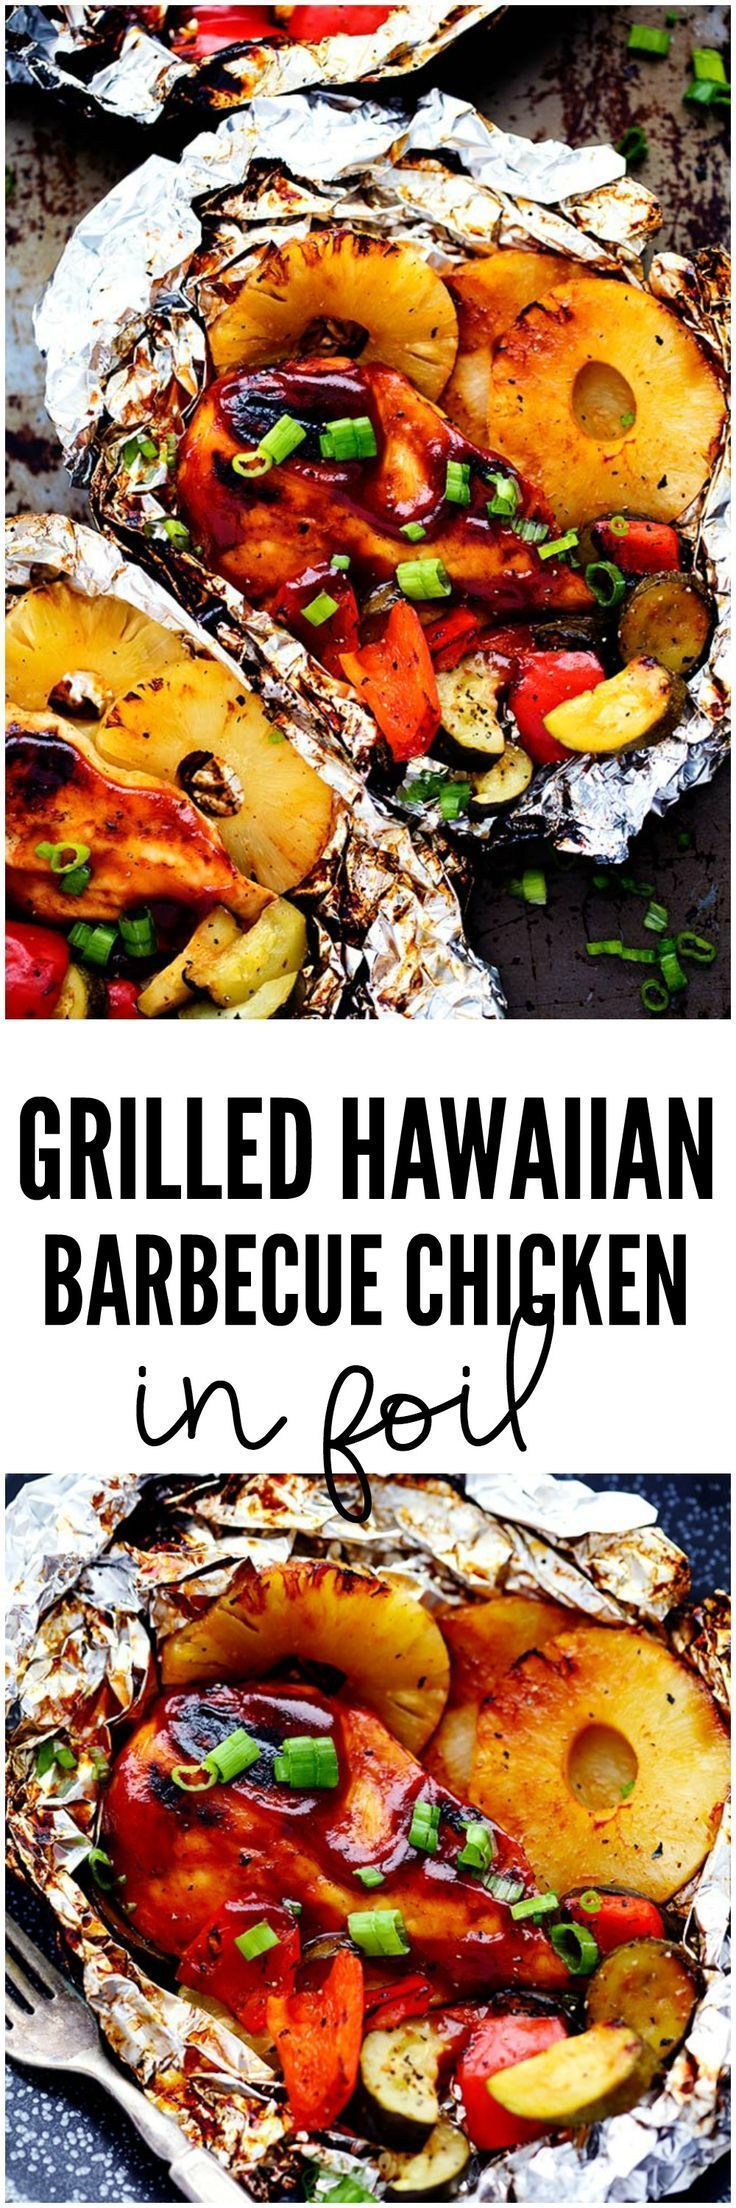 Grilled Hawaiian Barbecue Chicken in Foil